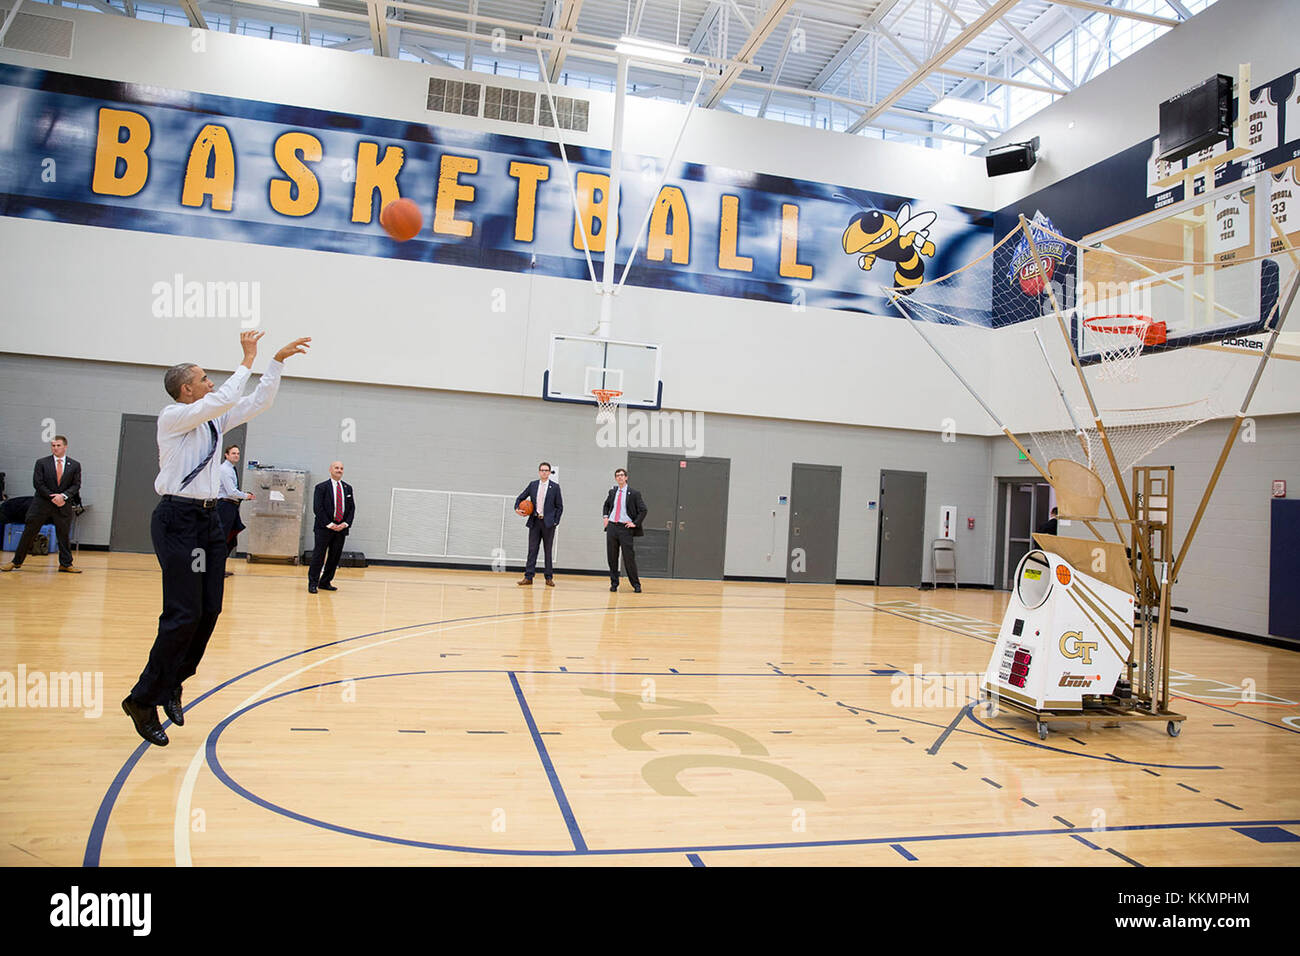 President Barack Obama Takes A Shot On The Basketball Court After He Stock Photo Alamy